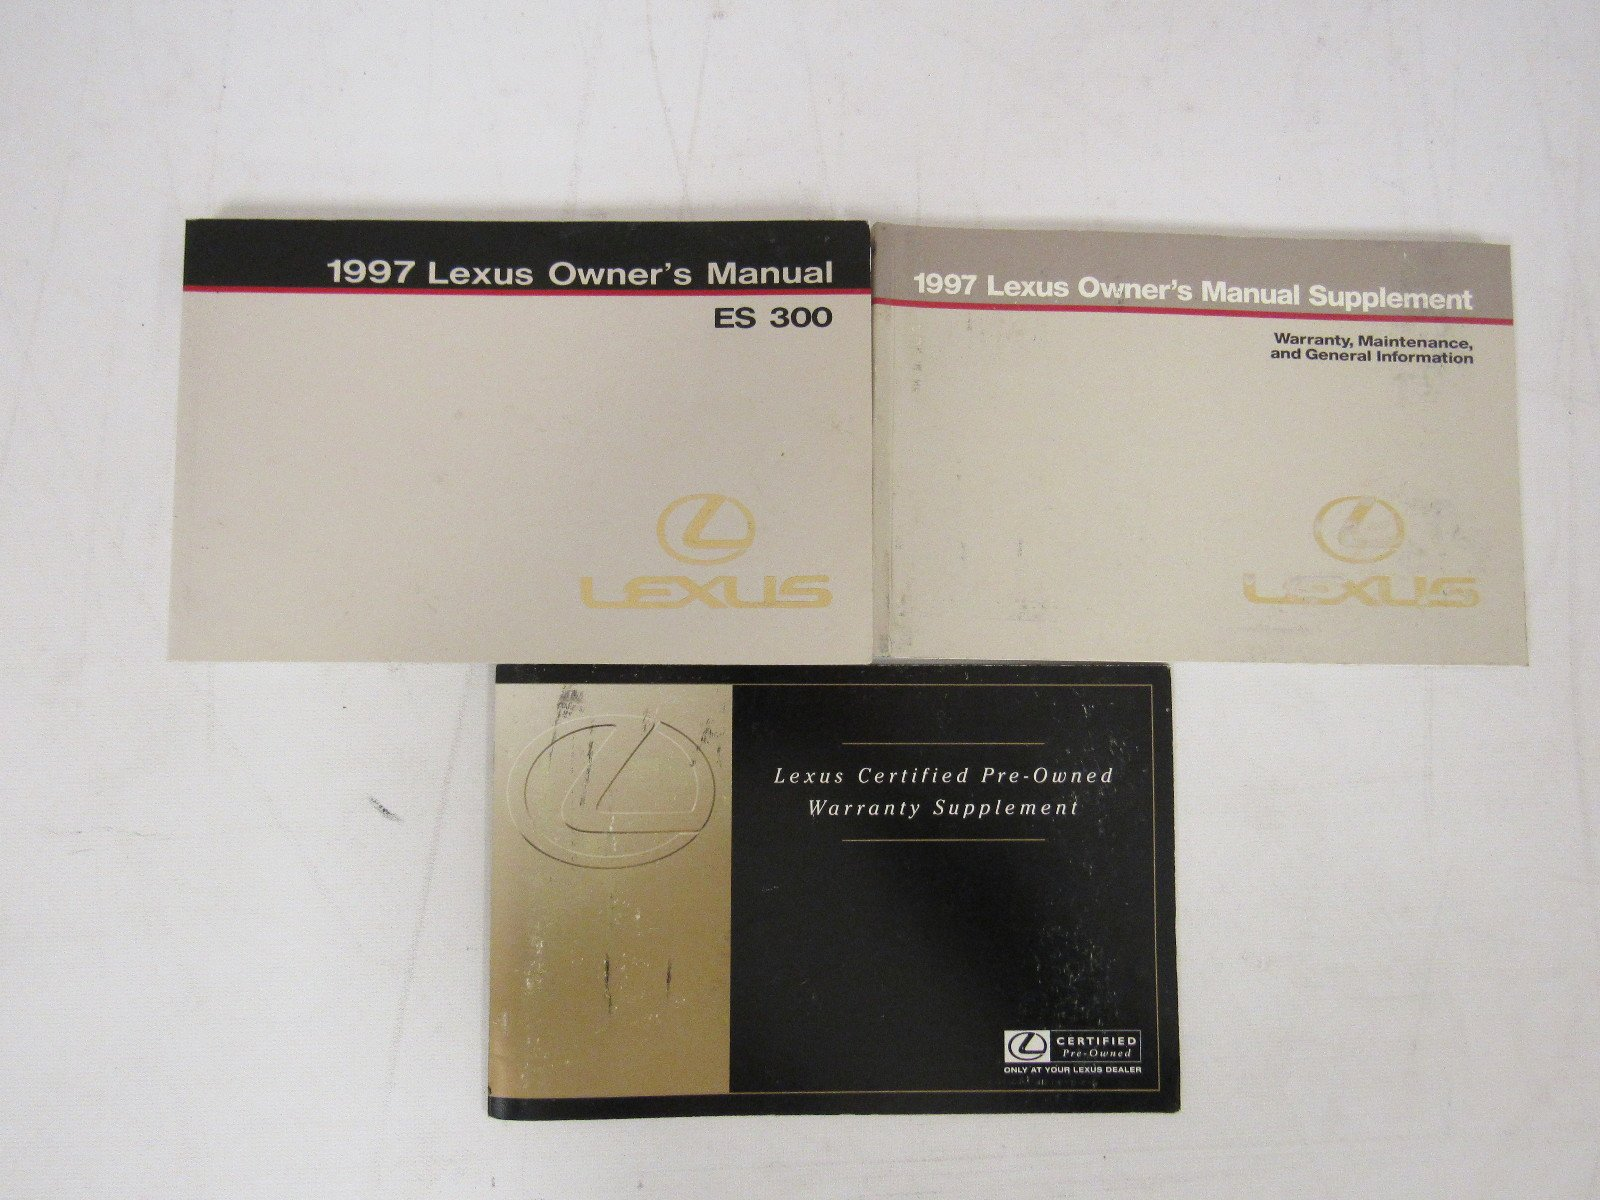 1997 lexus es 300 owners manual operating manual guide u2022 rh astra freewayprojects com 1999 lexus rx300 owners manual 1999 lexus rx300 owners manual download